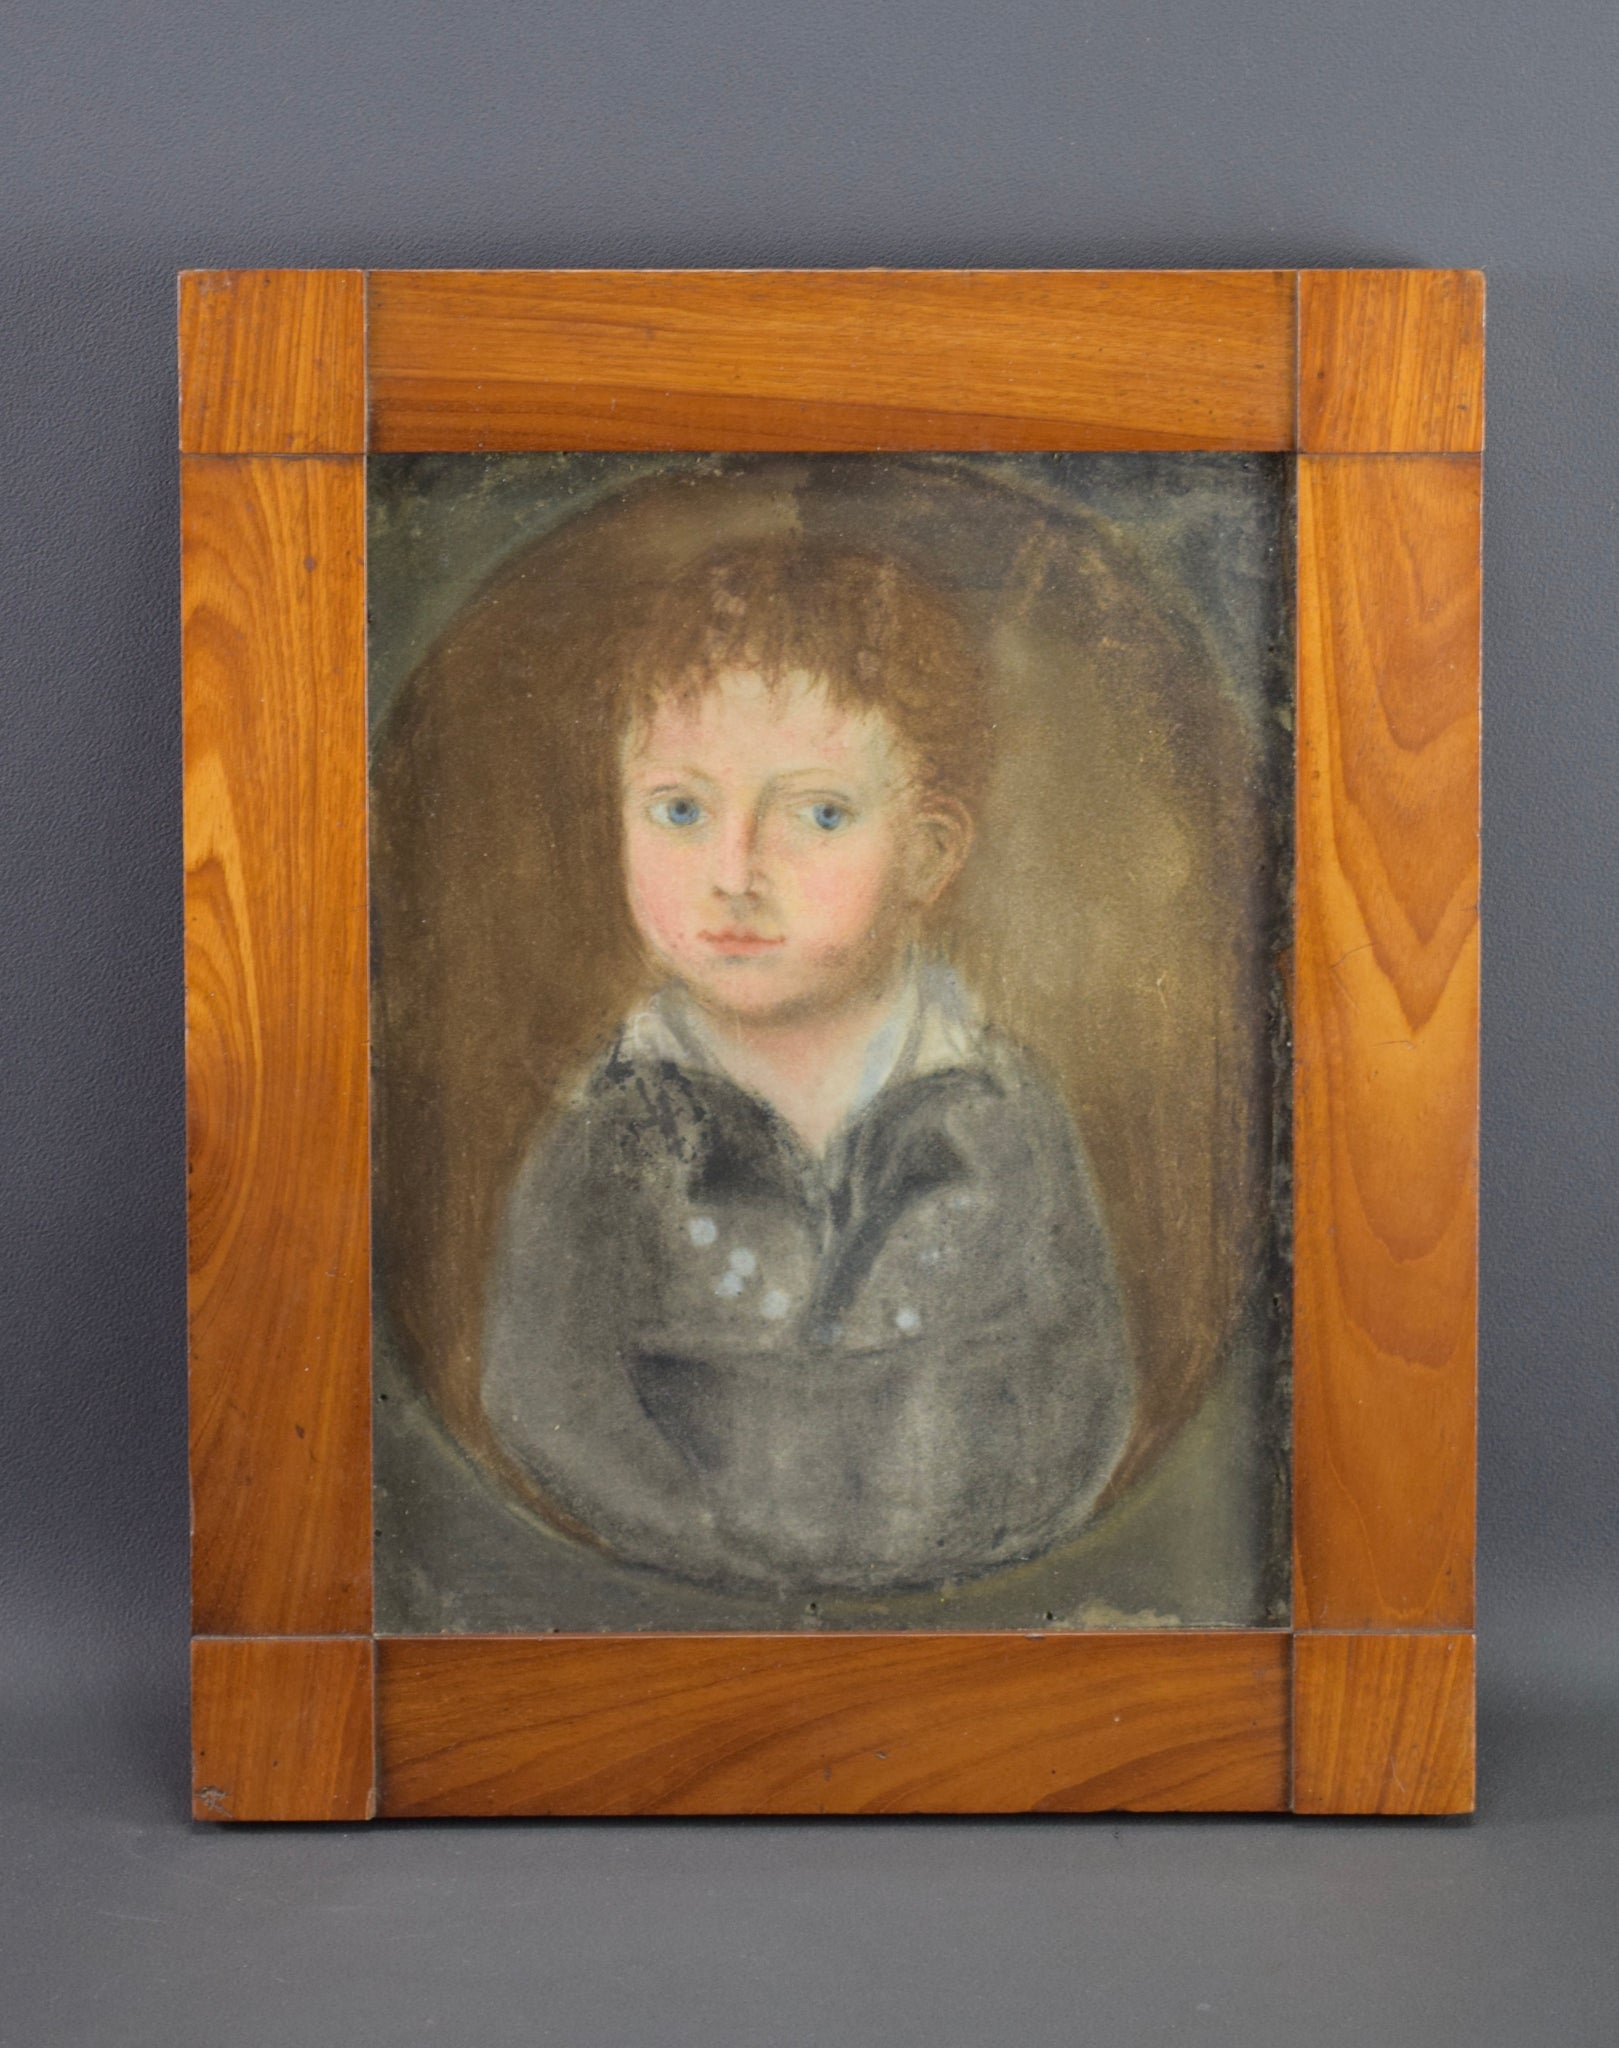 Vintage French Oil Painting Portrait of a Child Empire period